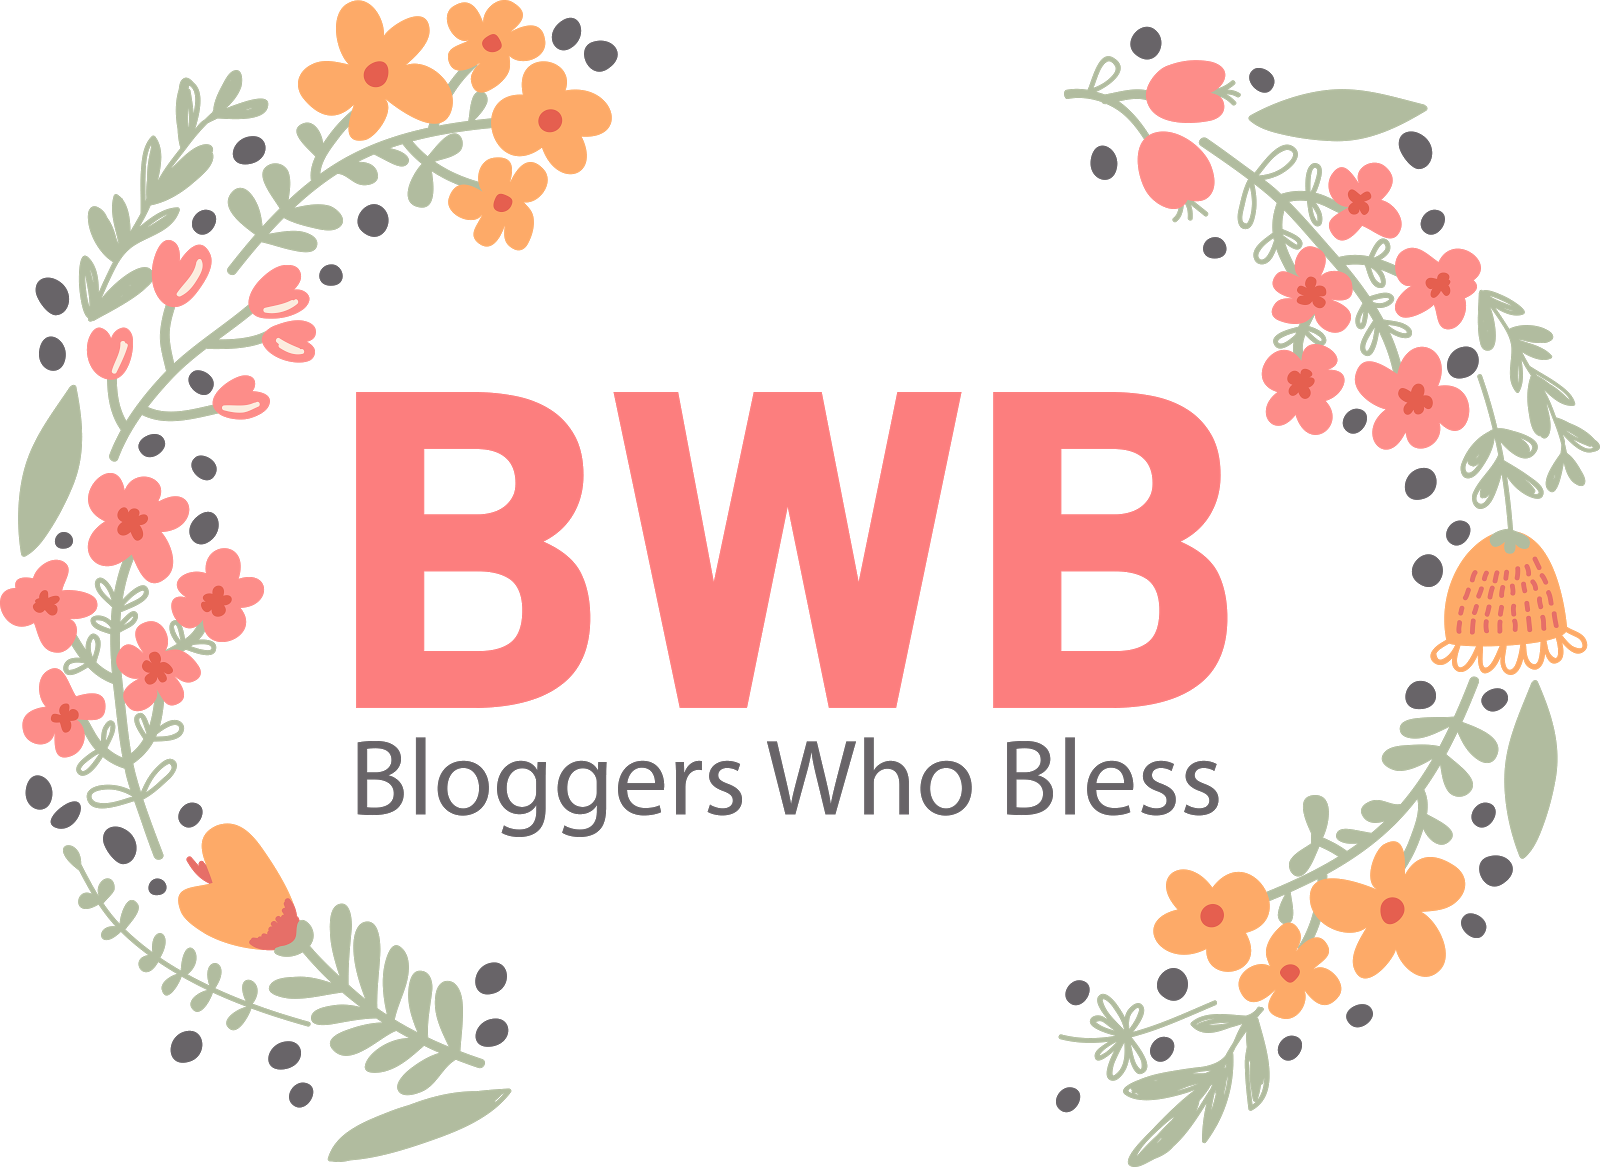 #BloggersWhoBless